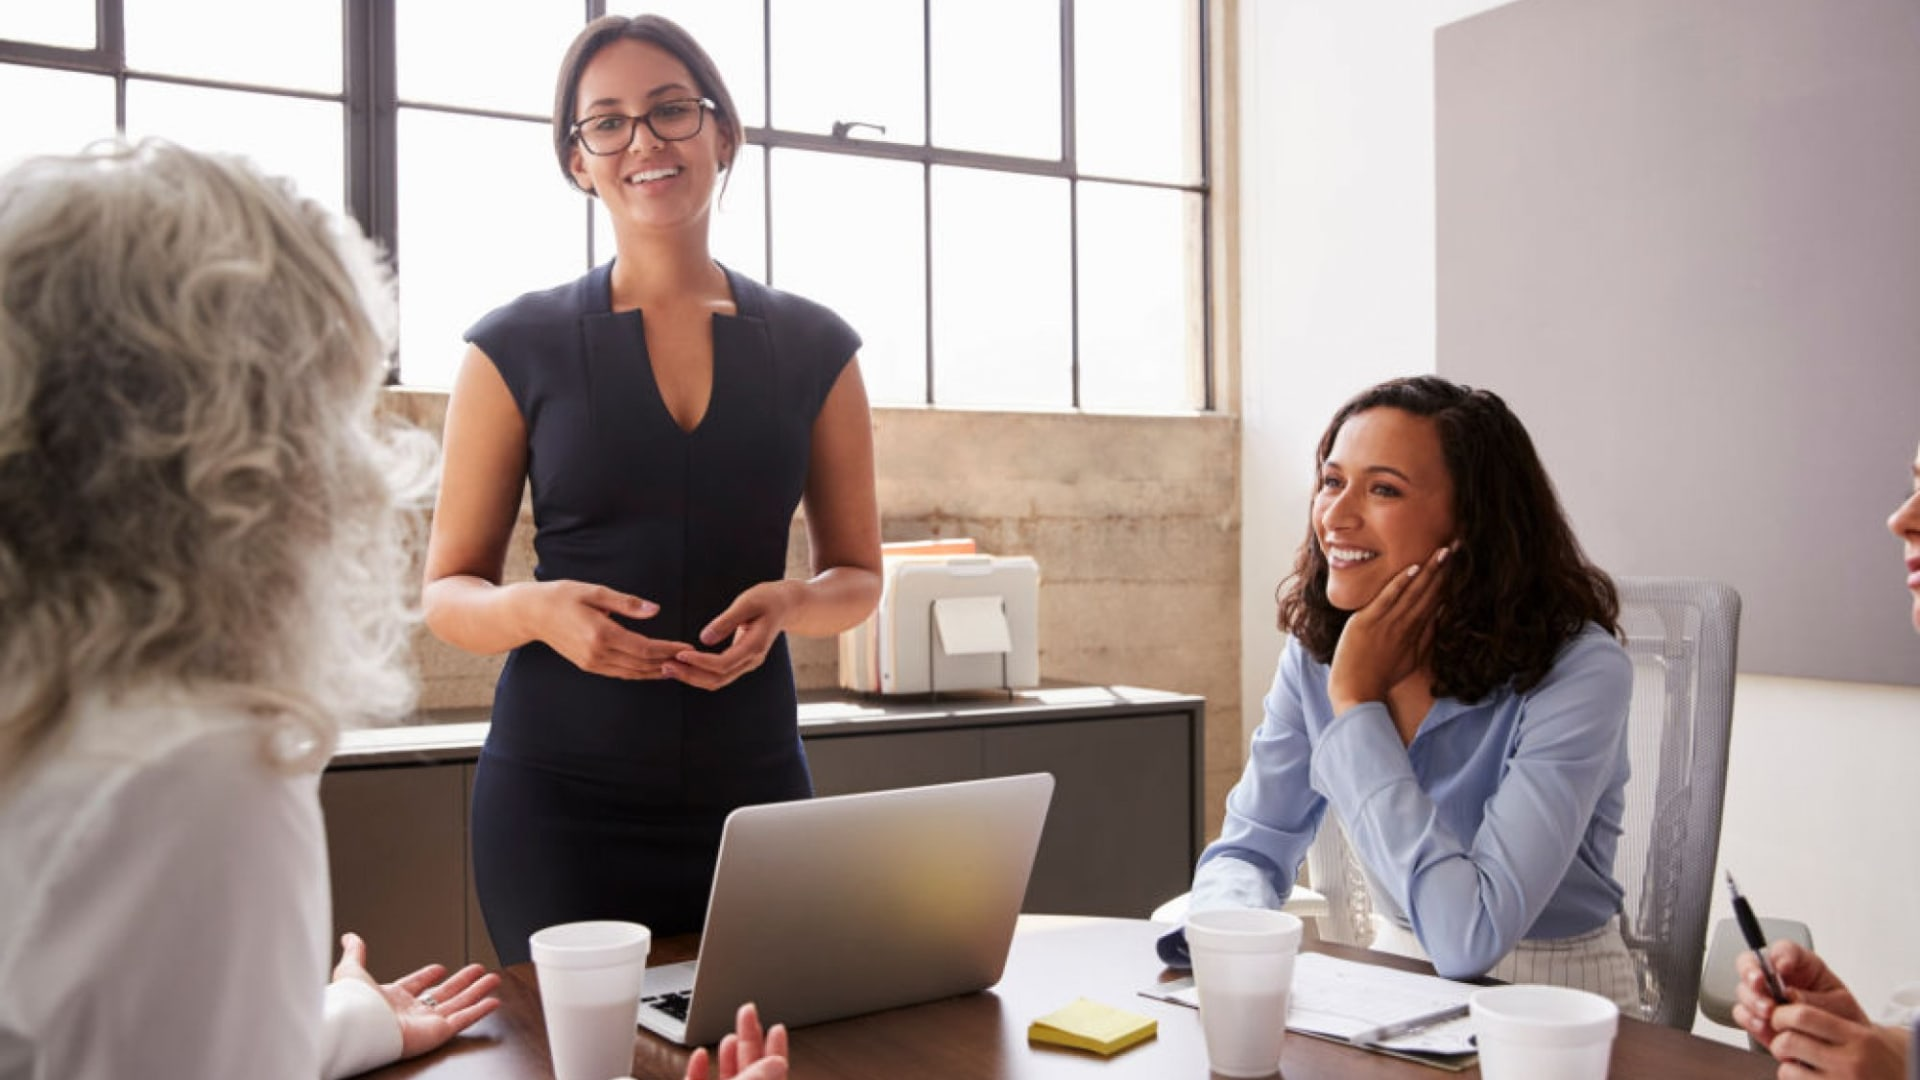 How Women's Authentic Leadership Can Impact Companies for the Better